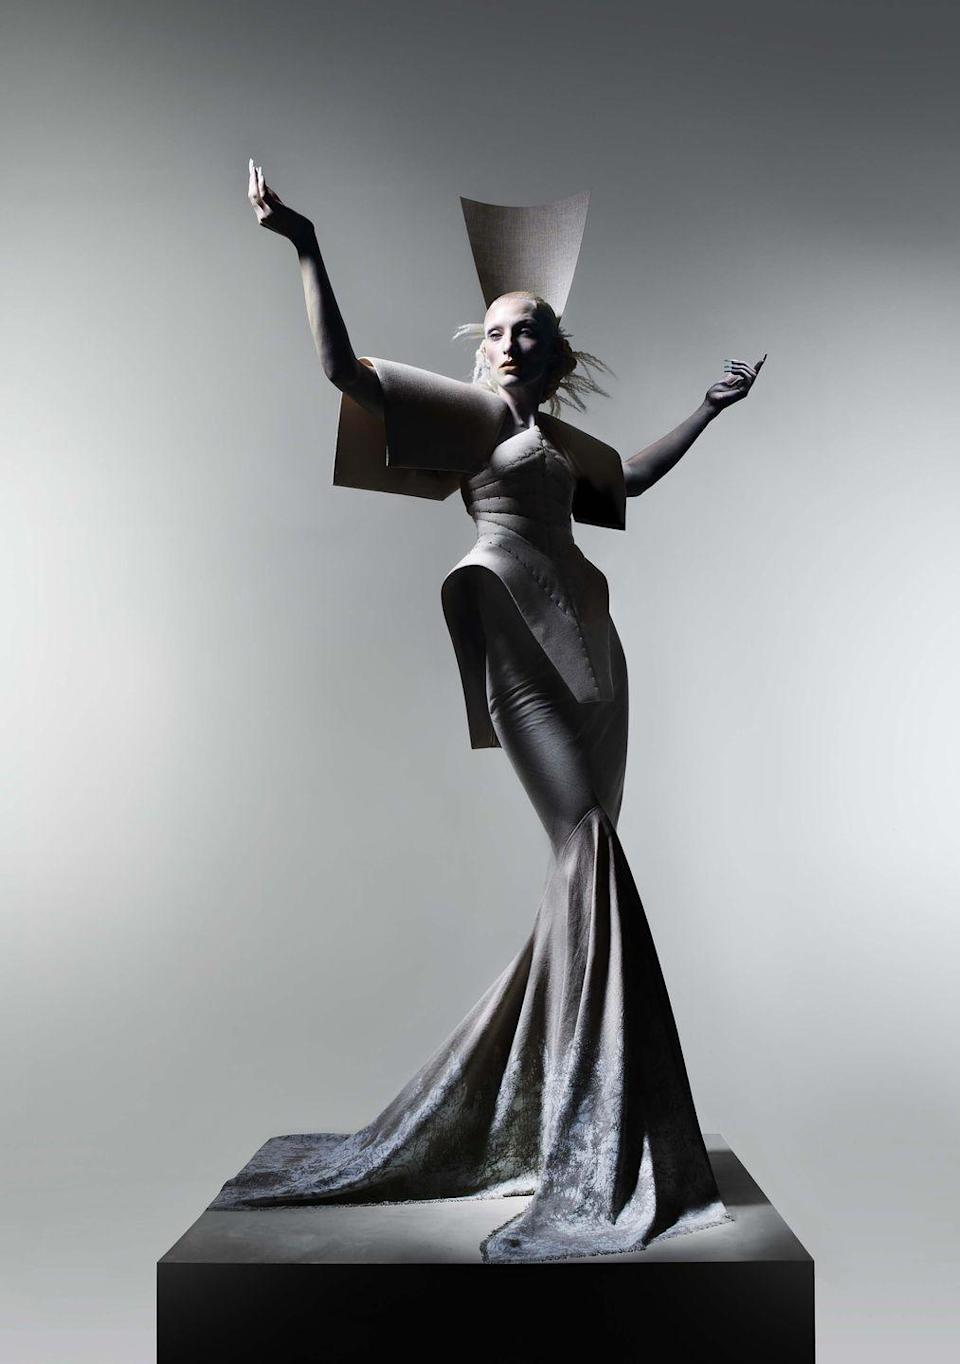 "<p>Beloved British designer <a href=""https://hitandrun.ltd/collections/gareth-pugh"" rel=""nofollow noopener"" target=""_blank"" data-ylk=""slk:Gareth Pugh"" class=""link rapid-noclick-resp"">Gareth Pugh</a> is back with a multi-disciplinary project photographed by Nick Knight.</p><p>Named 'The Reconstruction', the project is an impassioned response to the impact of the COVID-19 pandemic, and sees a host of incredible talent come together for a visual album and exhibition hosted in <a href=""https://www.christies.com/"" rel=""nofollow noopener"" target=""_blank"" data-ylk=""slk:Christie's"" class=""link rapid-noclick-resp"">Christie's</a> London.</p><p>None of the 13 looks created for the project will be for sale, however Pugh has also produced a capsule collection in collaboration with designer Melissa Mehrtens, which will launch alongside the visual album, featuring the likes of Rina Sawayama and IAMDDB. </p><p>They can be purchased online via <a href=""https://hitandrun.ltd/collections/gareth-pugh"" rel=""nofollow noopener"" target=""_blank"" data-ylk=""slk:HIT + RUN"" class=""link rapid-noclick-resp"">HIT + RUN</a>, a new online retail platform promoting zero-waste. </p><p>All profits will go to Refuge, a charity providing specialist support for women and children experiencing domestic violence.</p><p><a class=""link rapid-noclick-resp"" href=""https://hitandrun.ltd/collections/gareth-pugh"" rel=""nofollow noopener"" target=""_blank"" data-ylk=""slk:SUPPORT NOW"">SUPPORT NOW</a></p>"